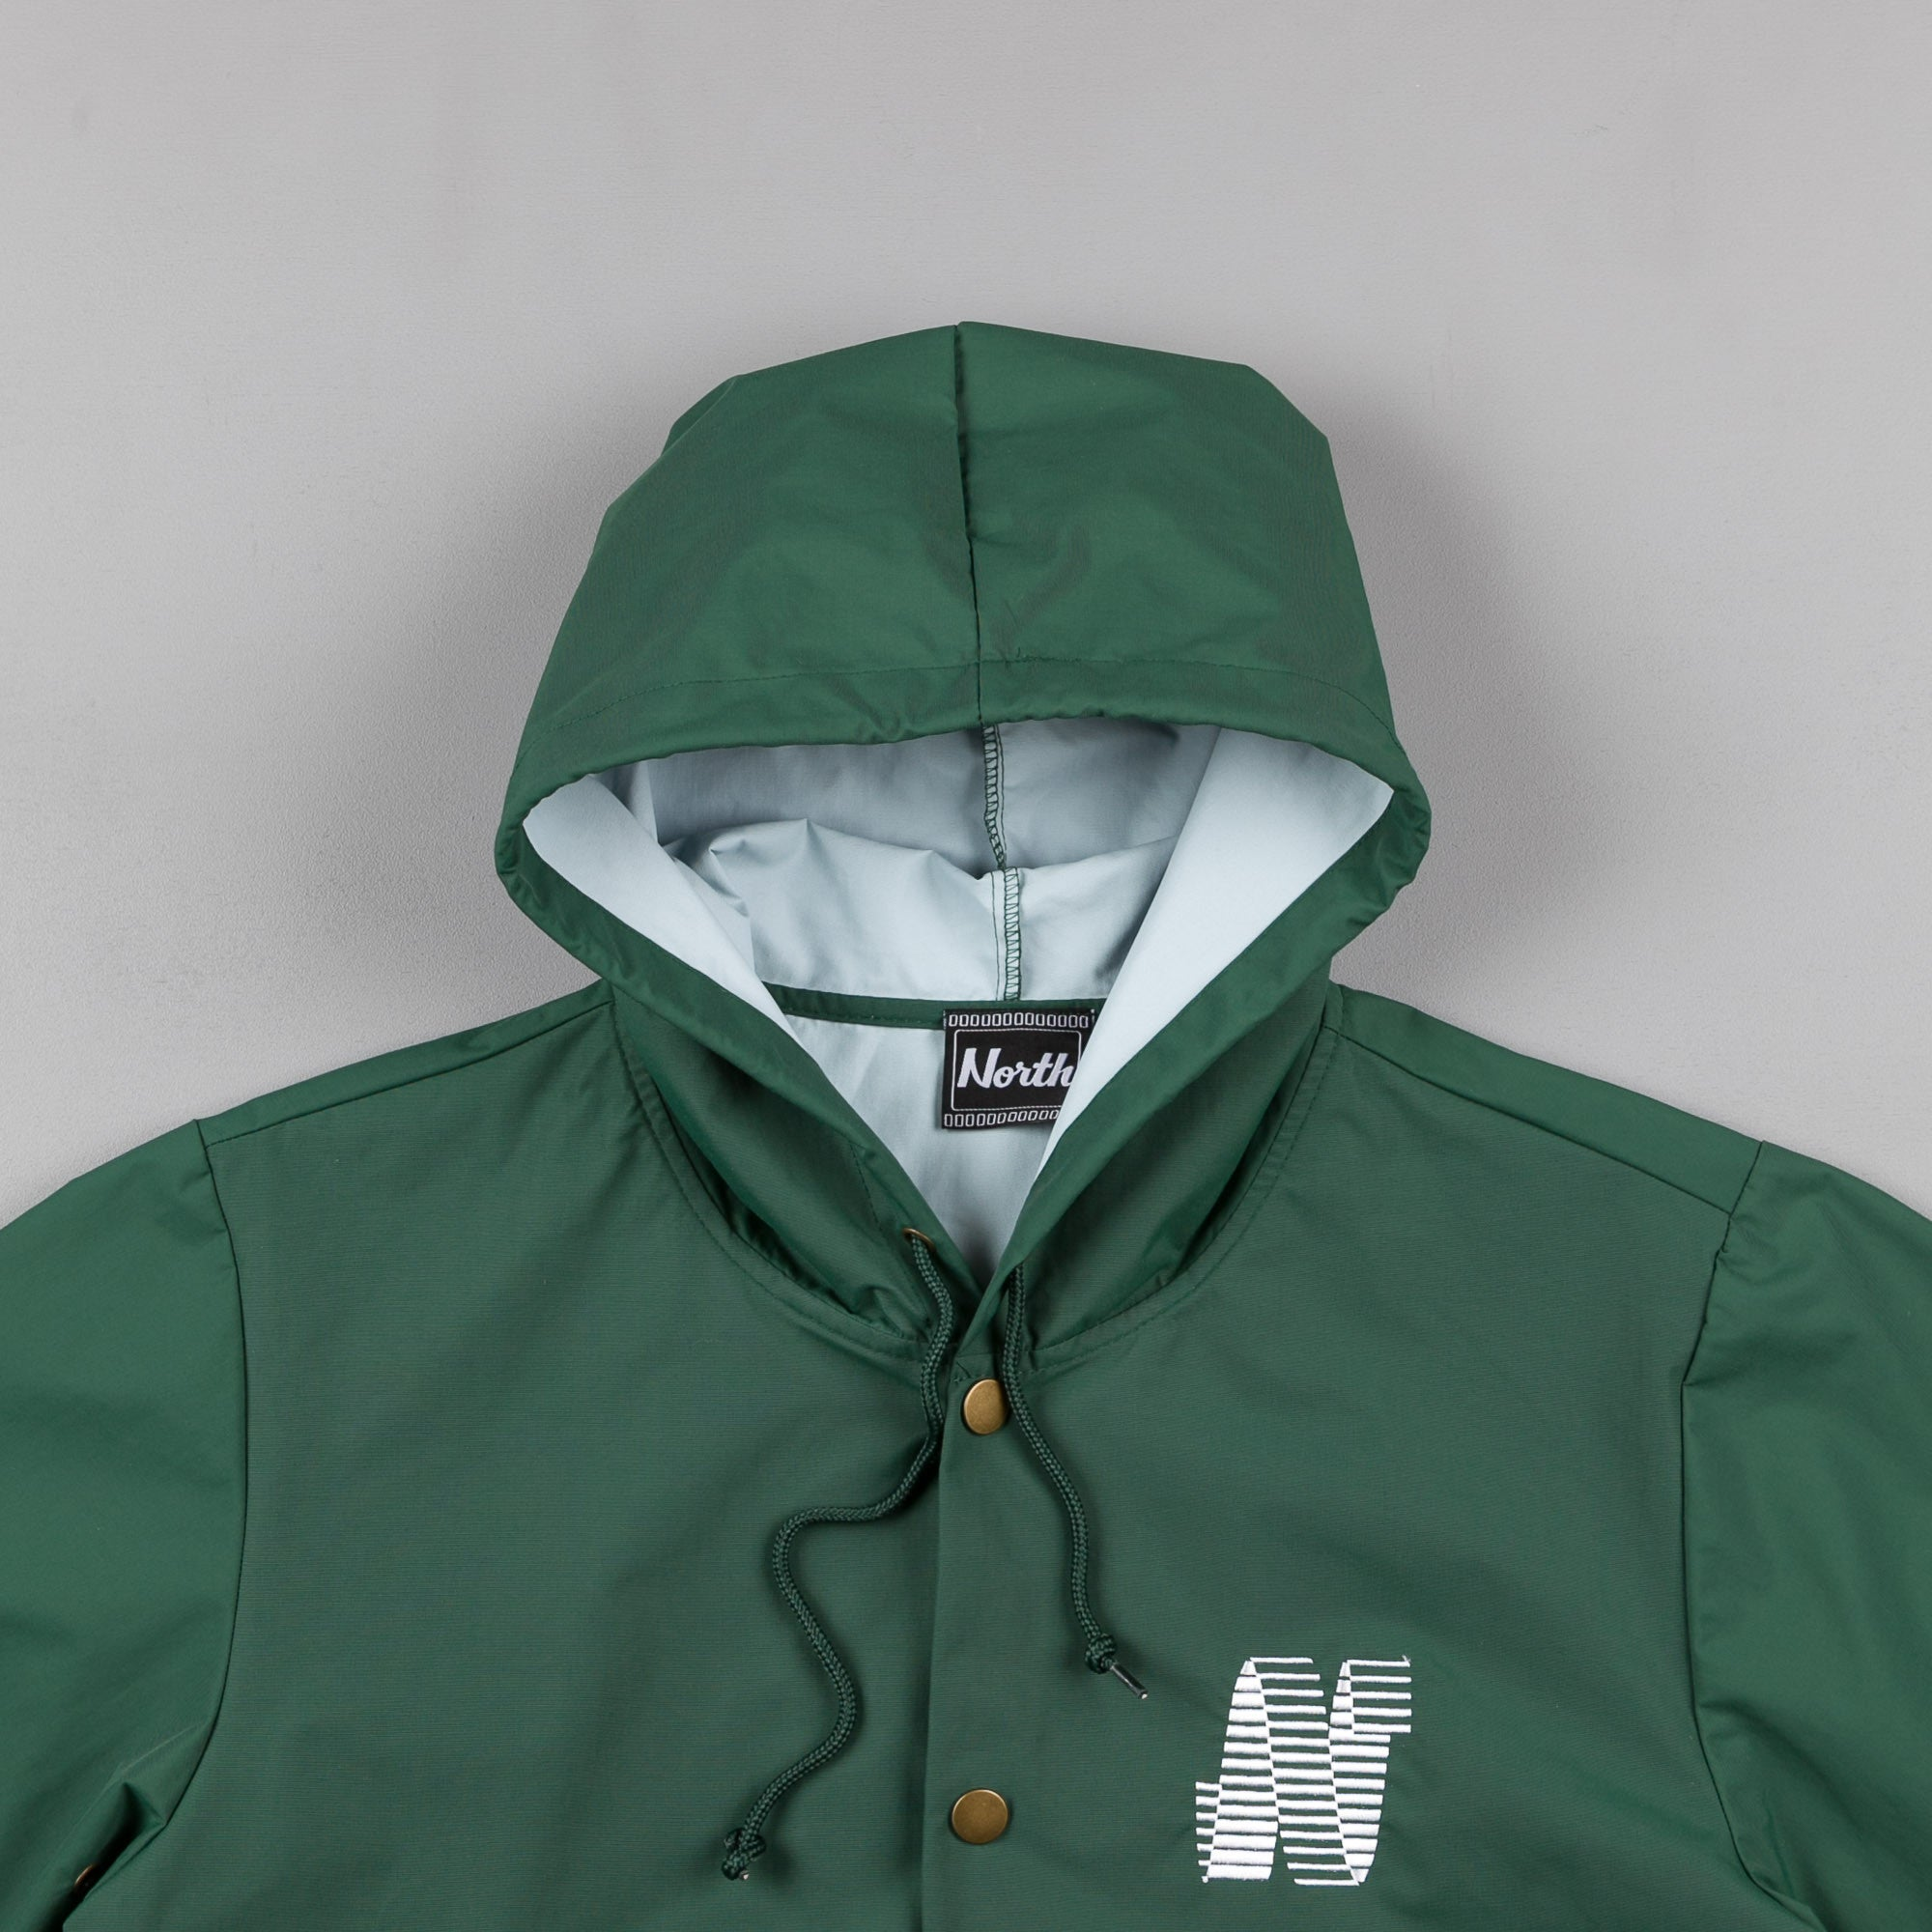 North Skateboard Magazine N Logo Hooded Coach Jacket - Green